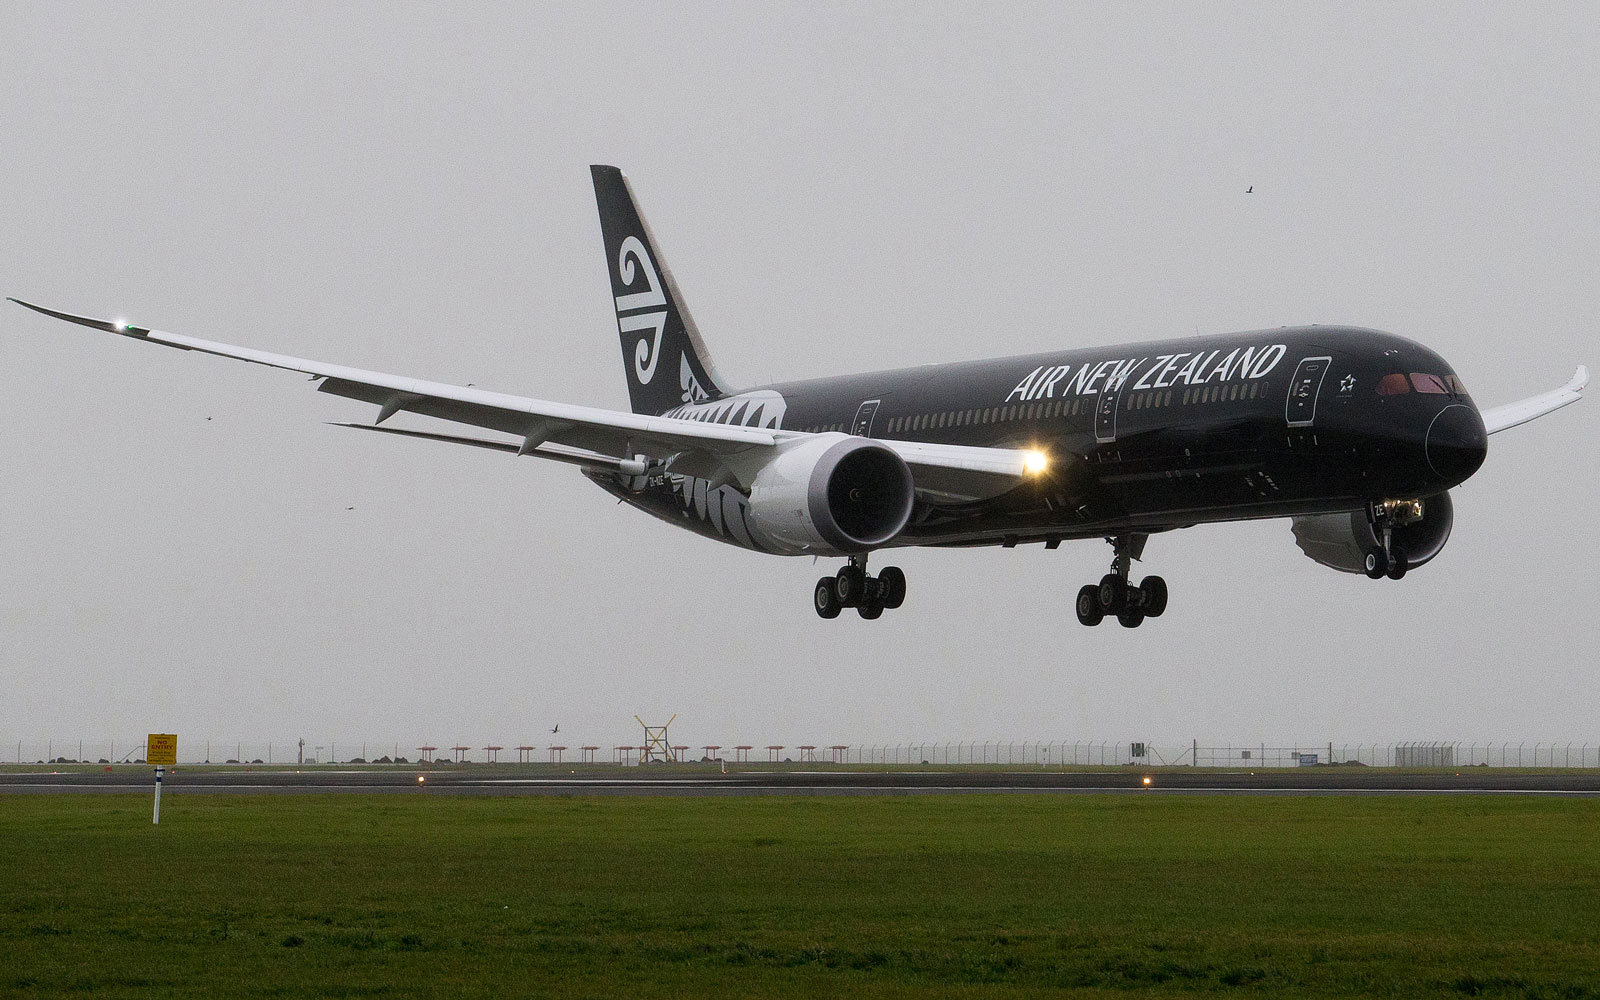 An Air New Zealand plane comes in to land.